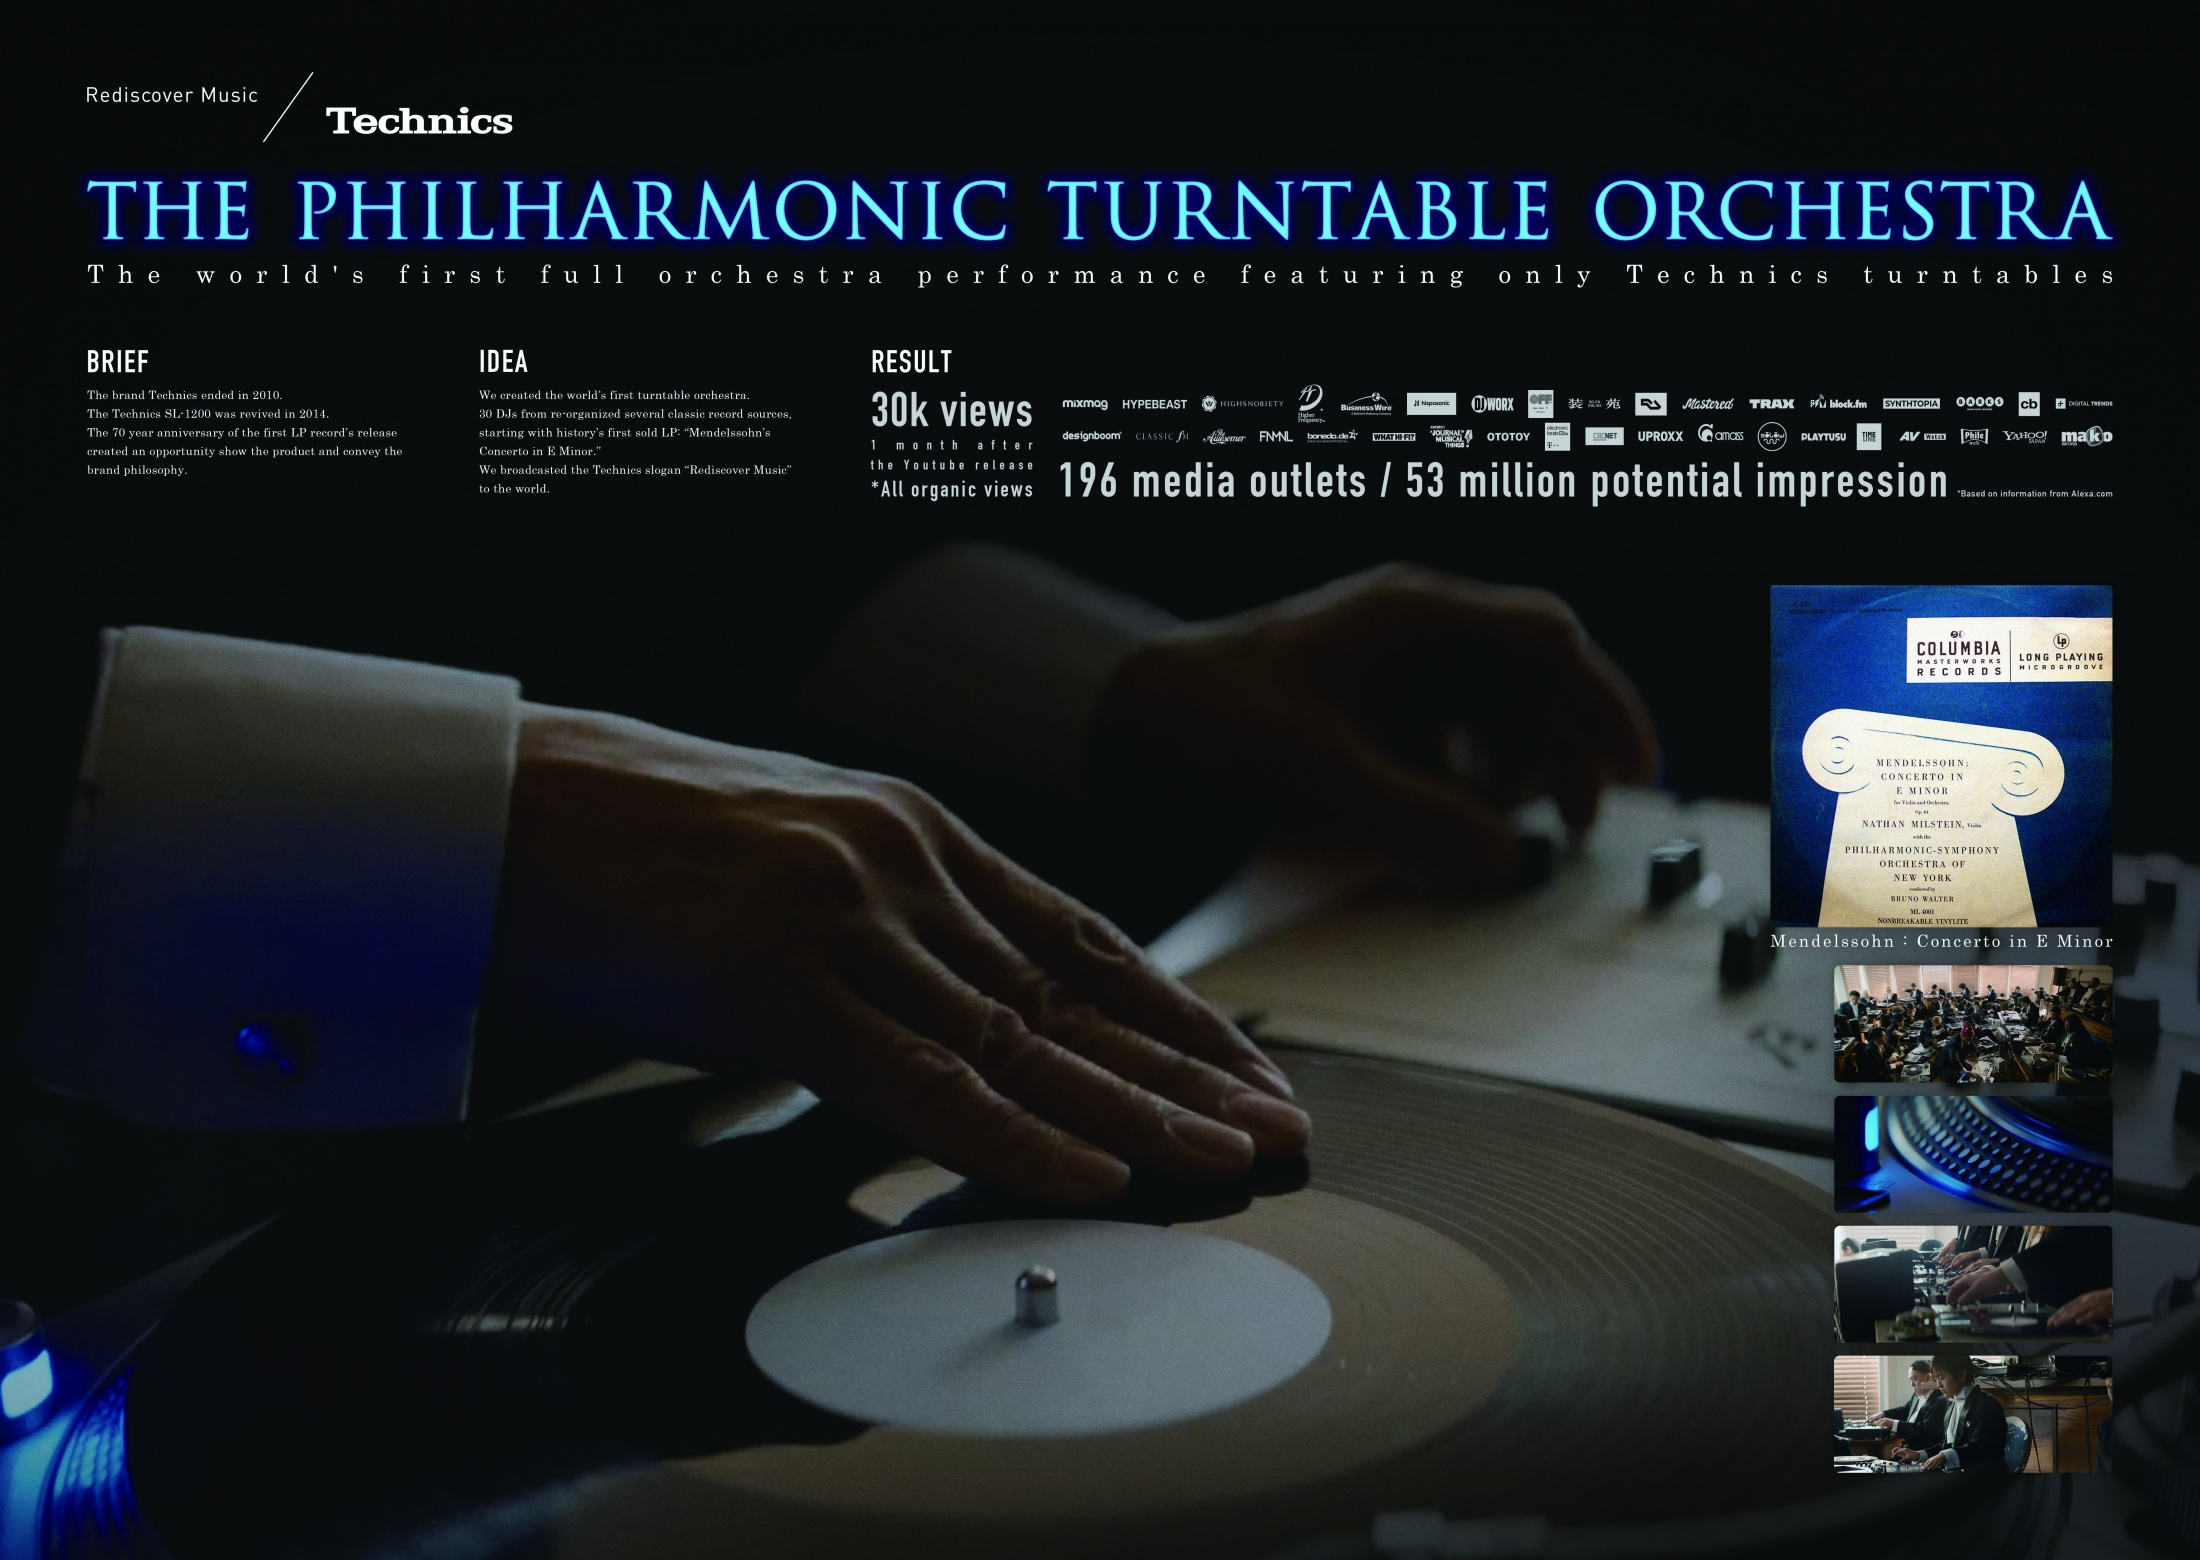 Image Media for THE PHILHARMONIC TURNTABLE ORCHESTRA